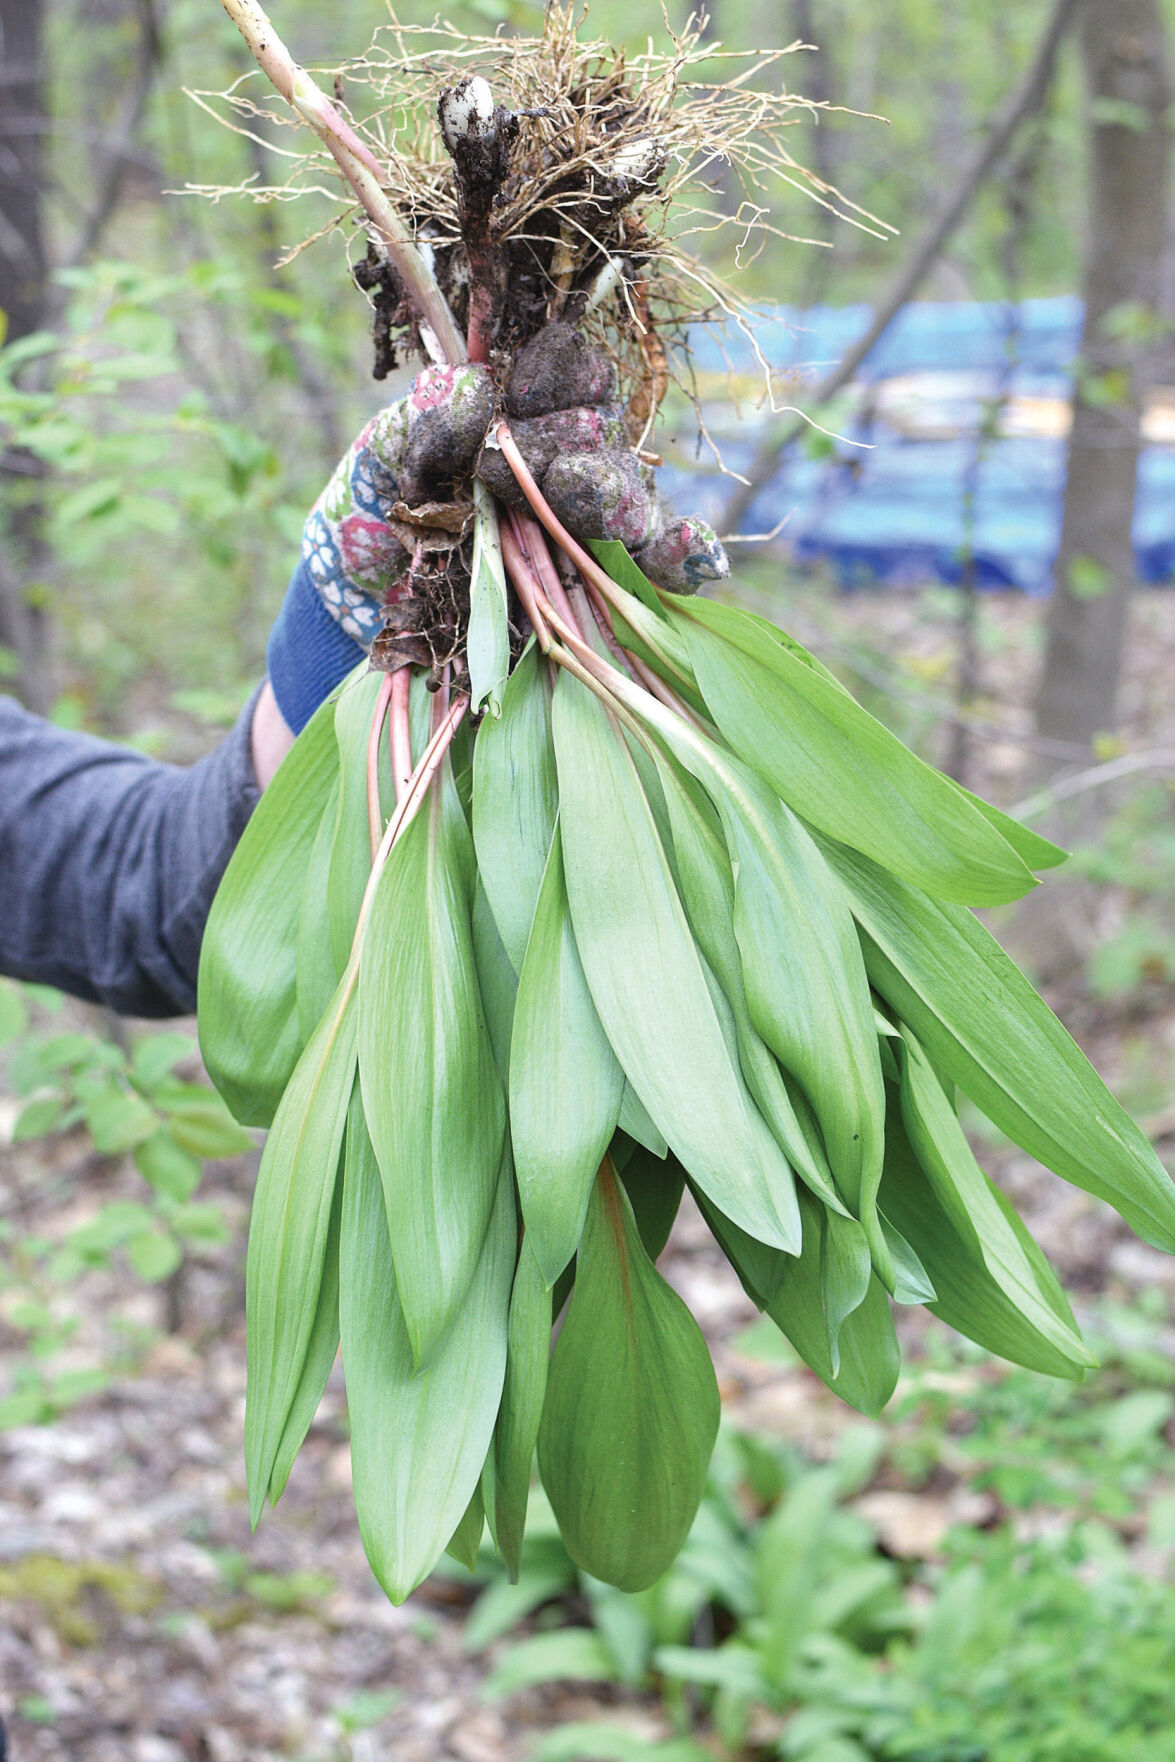 Ramp up the flavor with foraged ramps